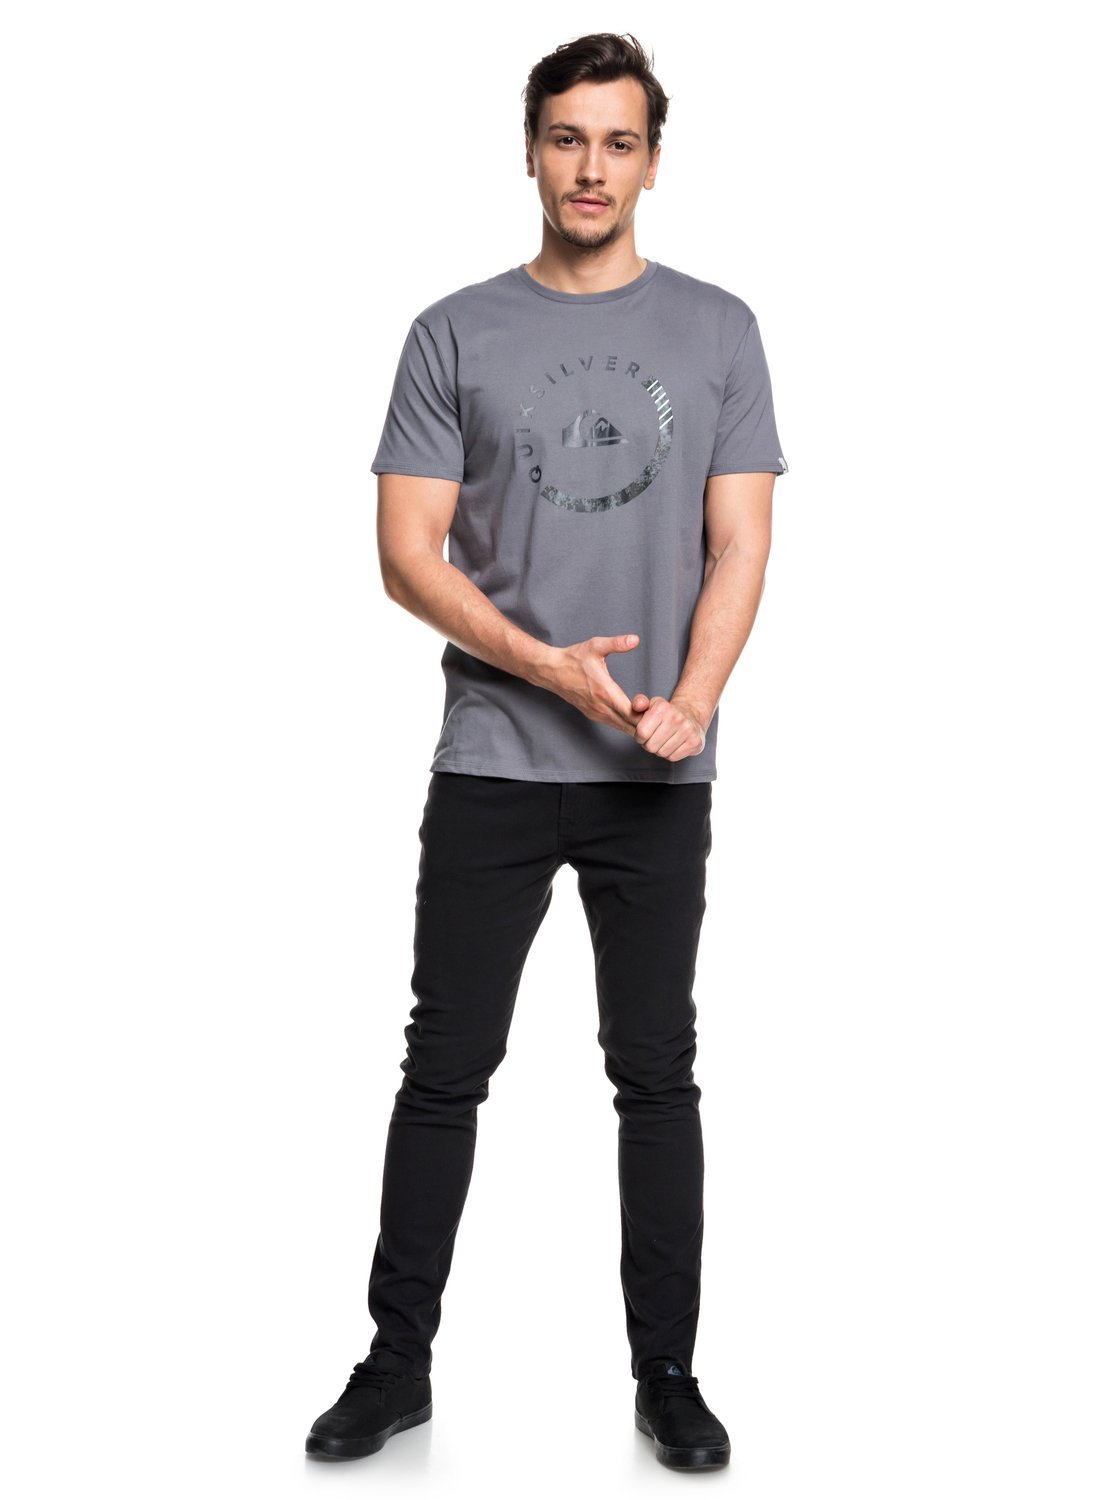 Quiksilver Men's Logo Tee Shirt, Slab Session Quiet Shade, M by Quiksilver (Image #3)